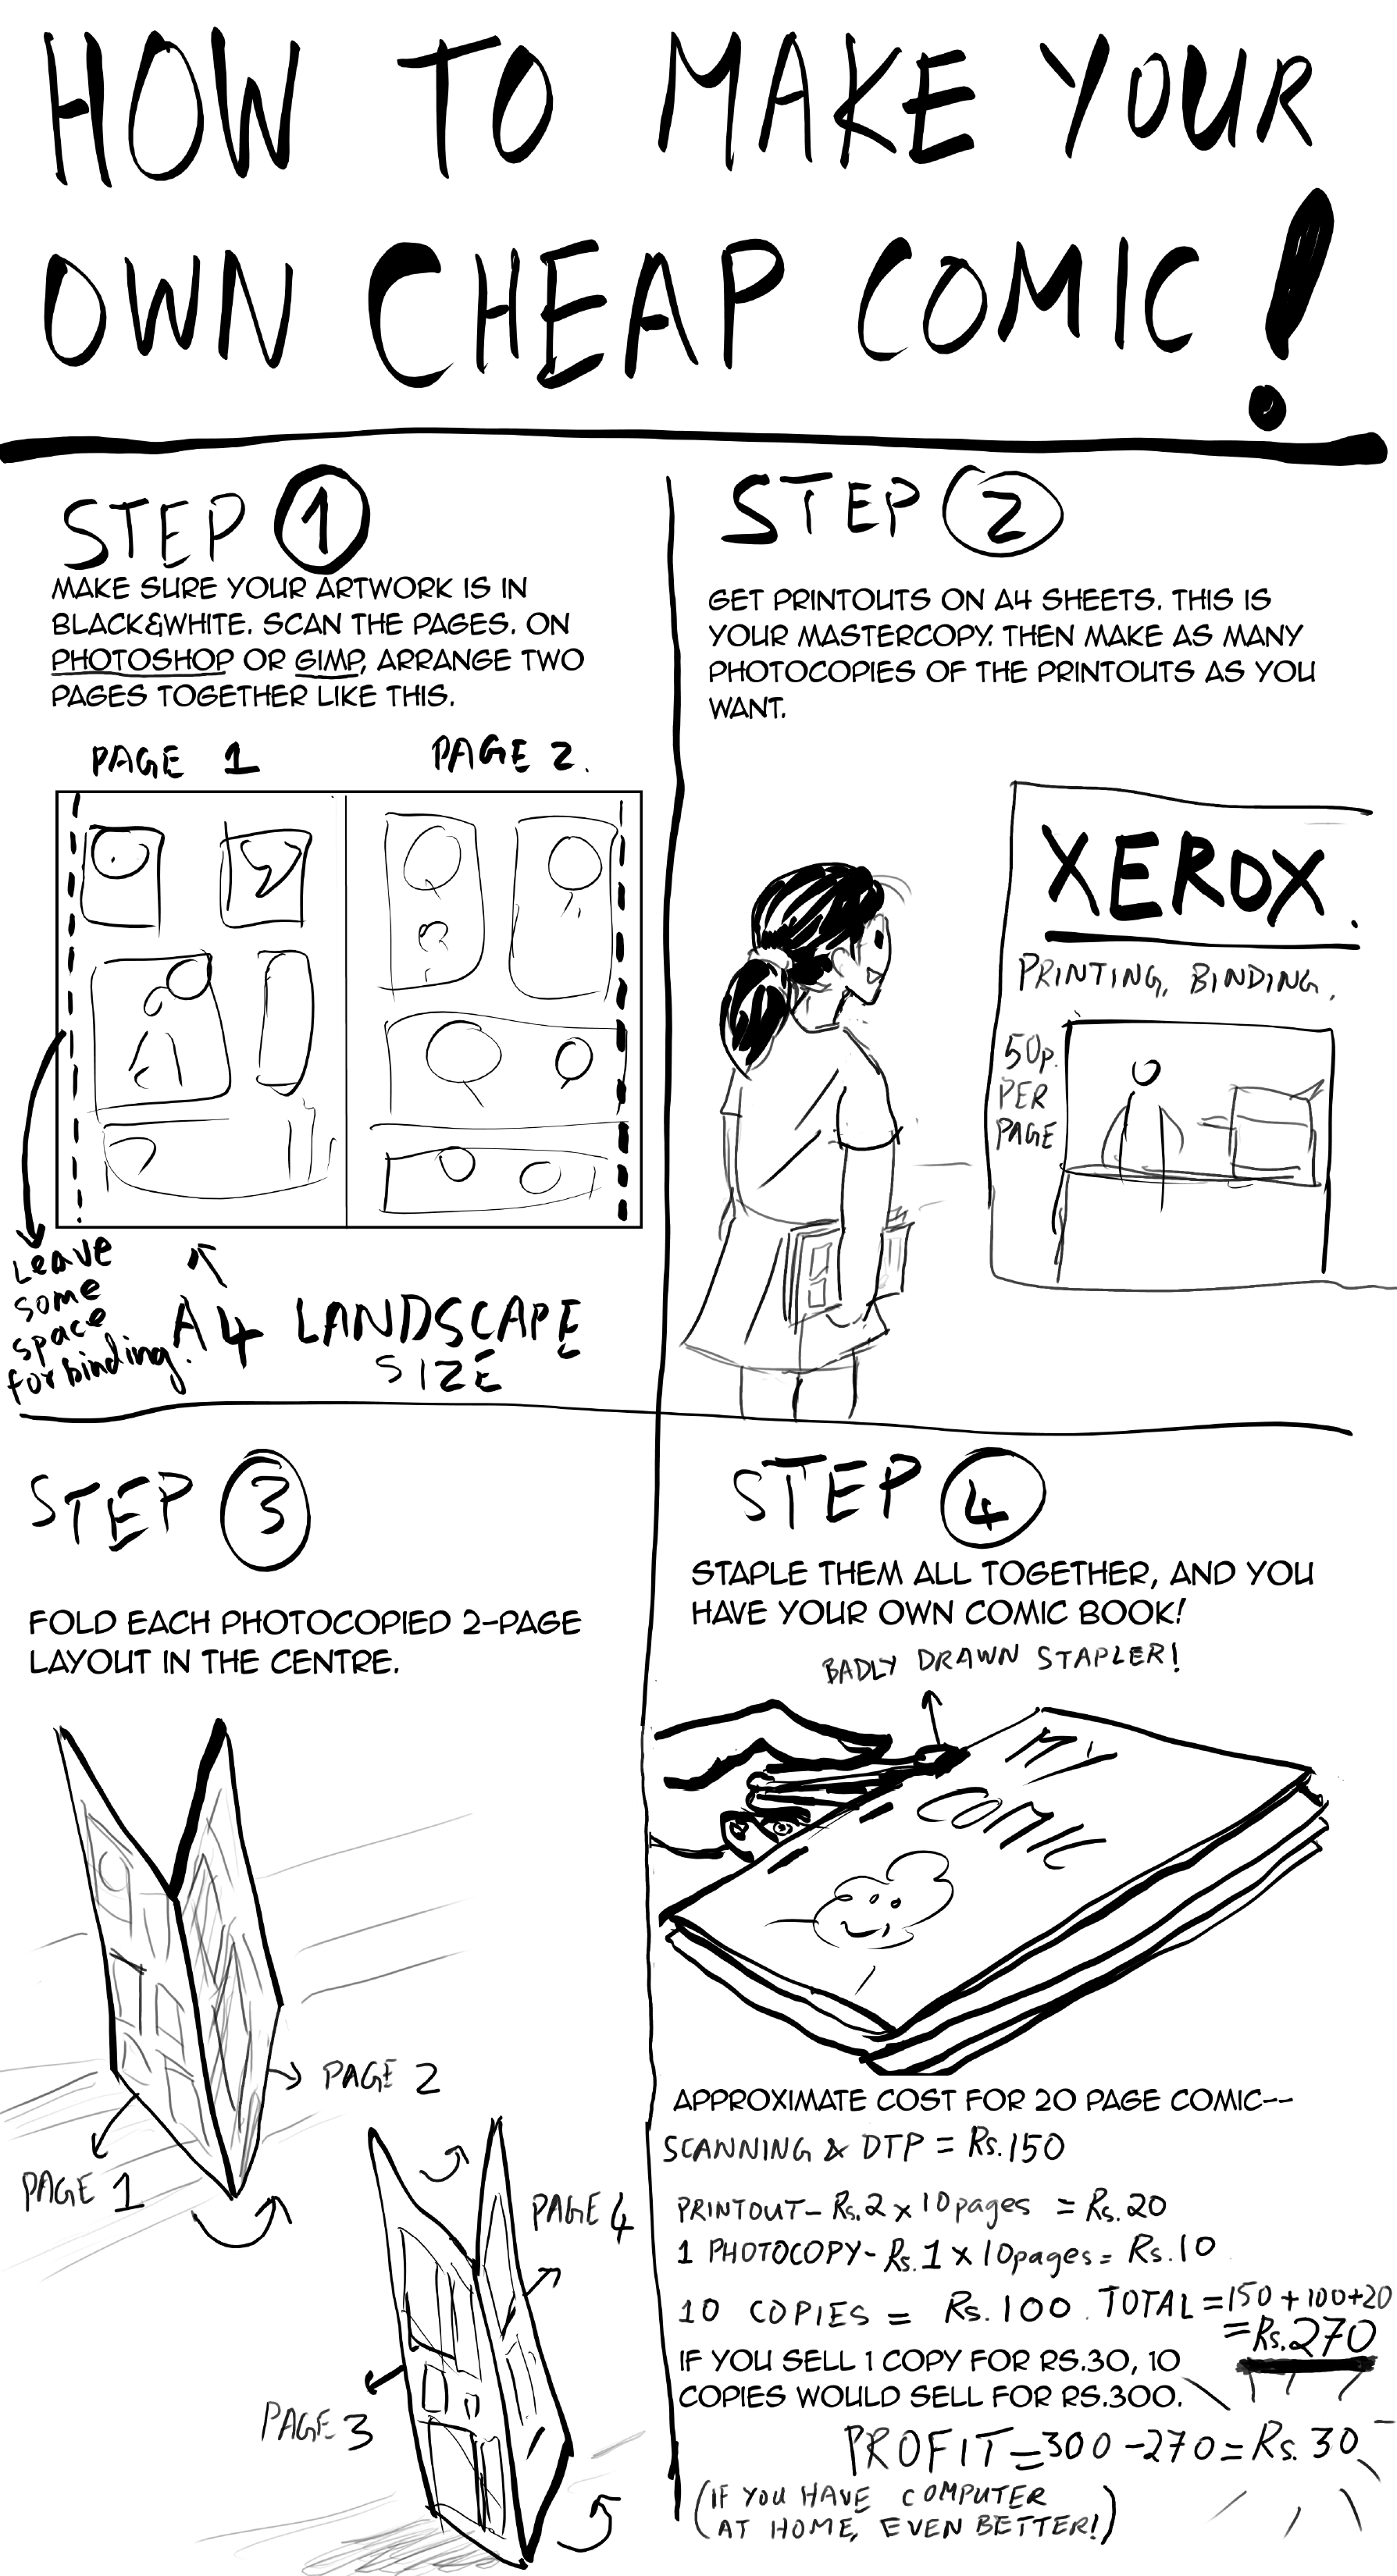 How To Make A Comic Book Cover In Photo : Make your own photocopy comic book comix india